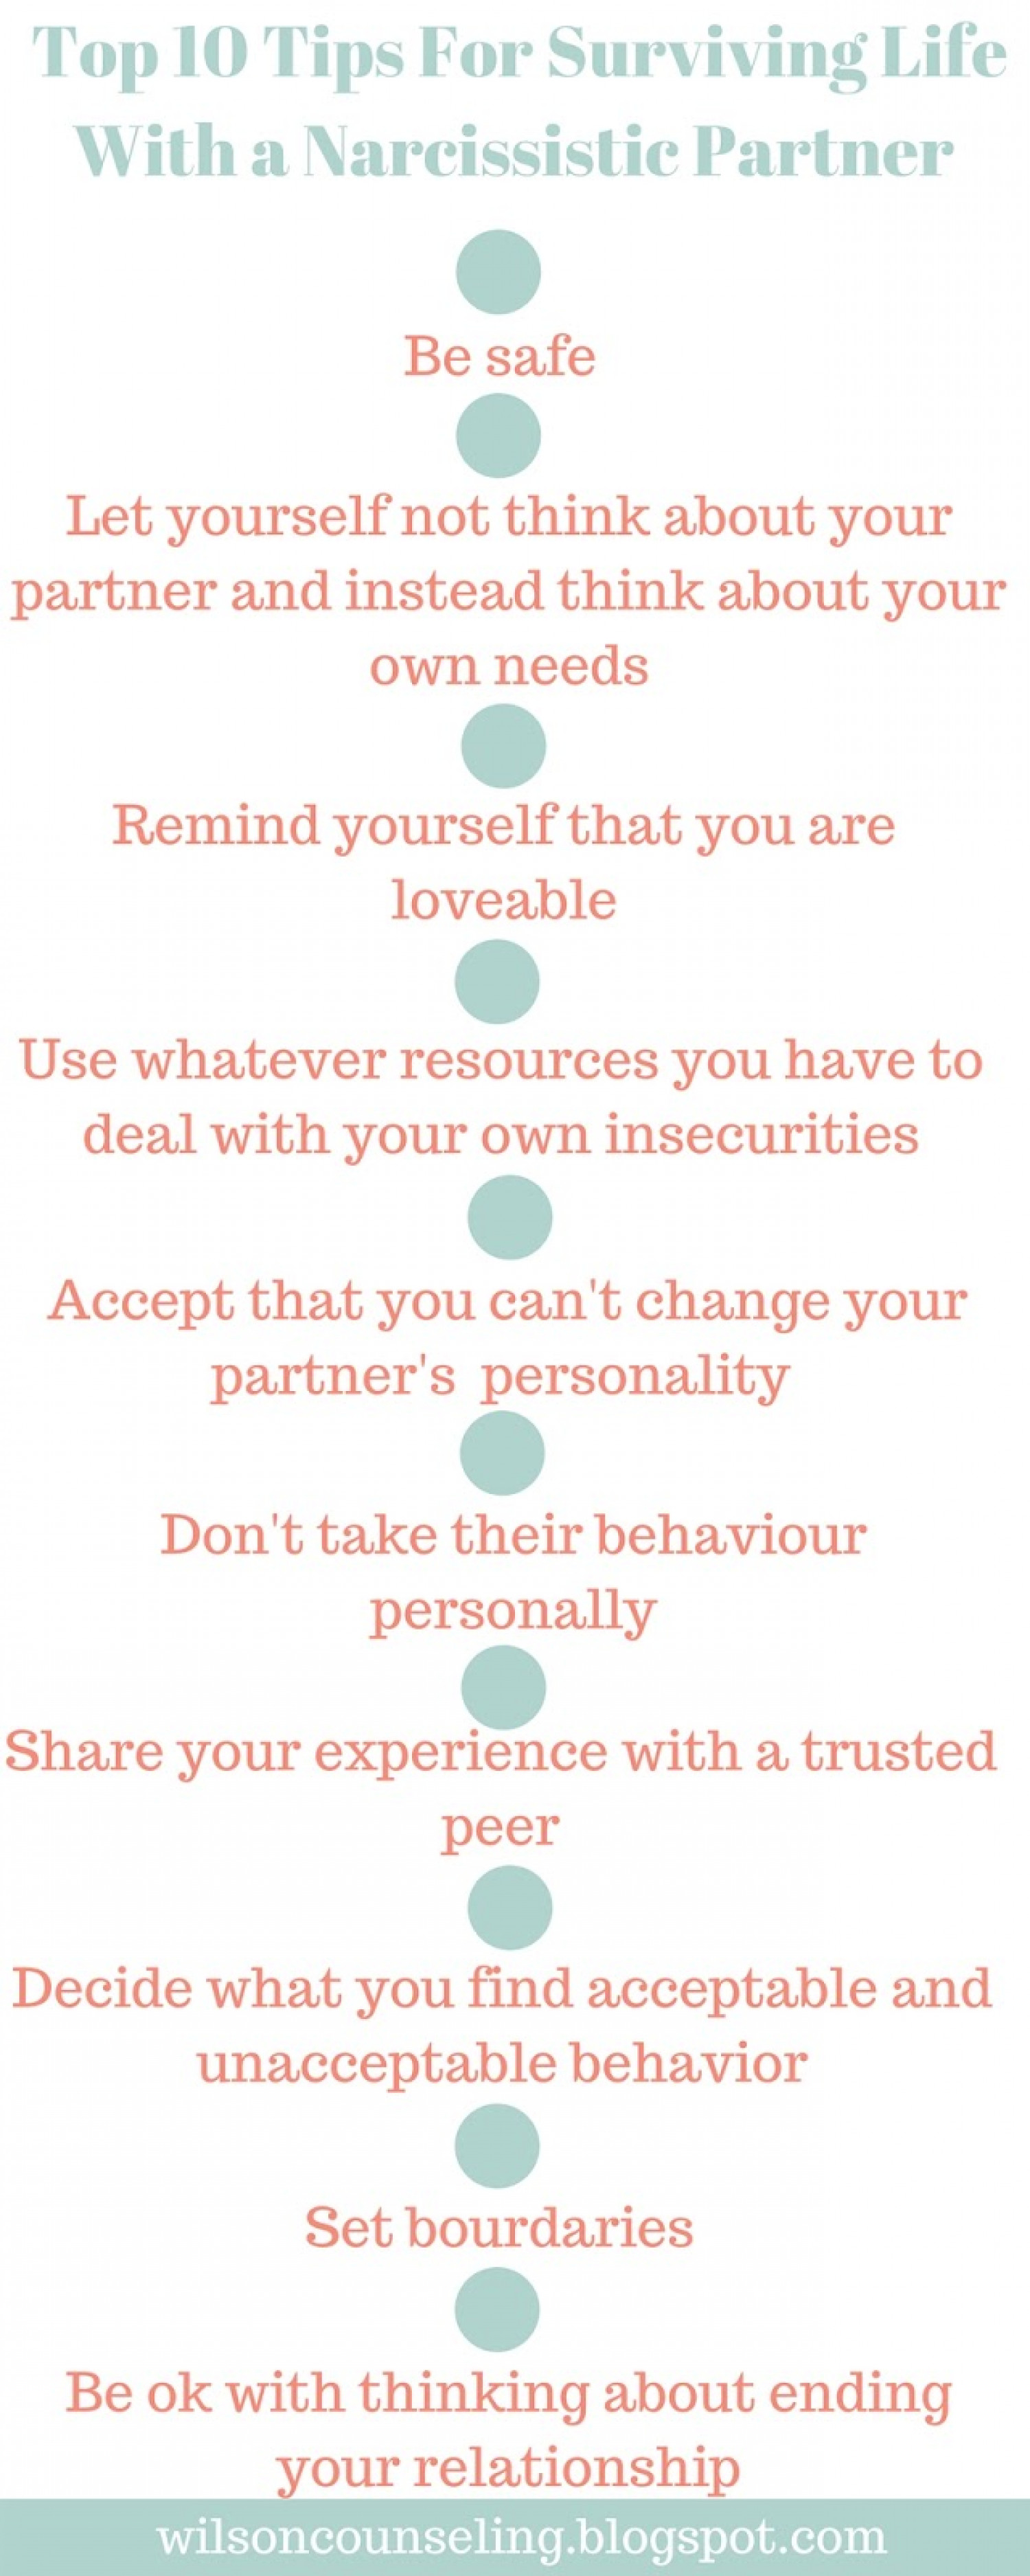 11 Ways to Get Past Painful Break-ups Infographic